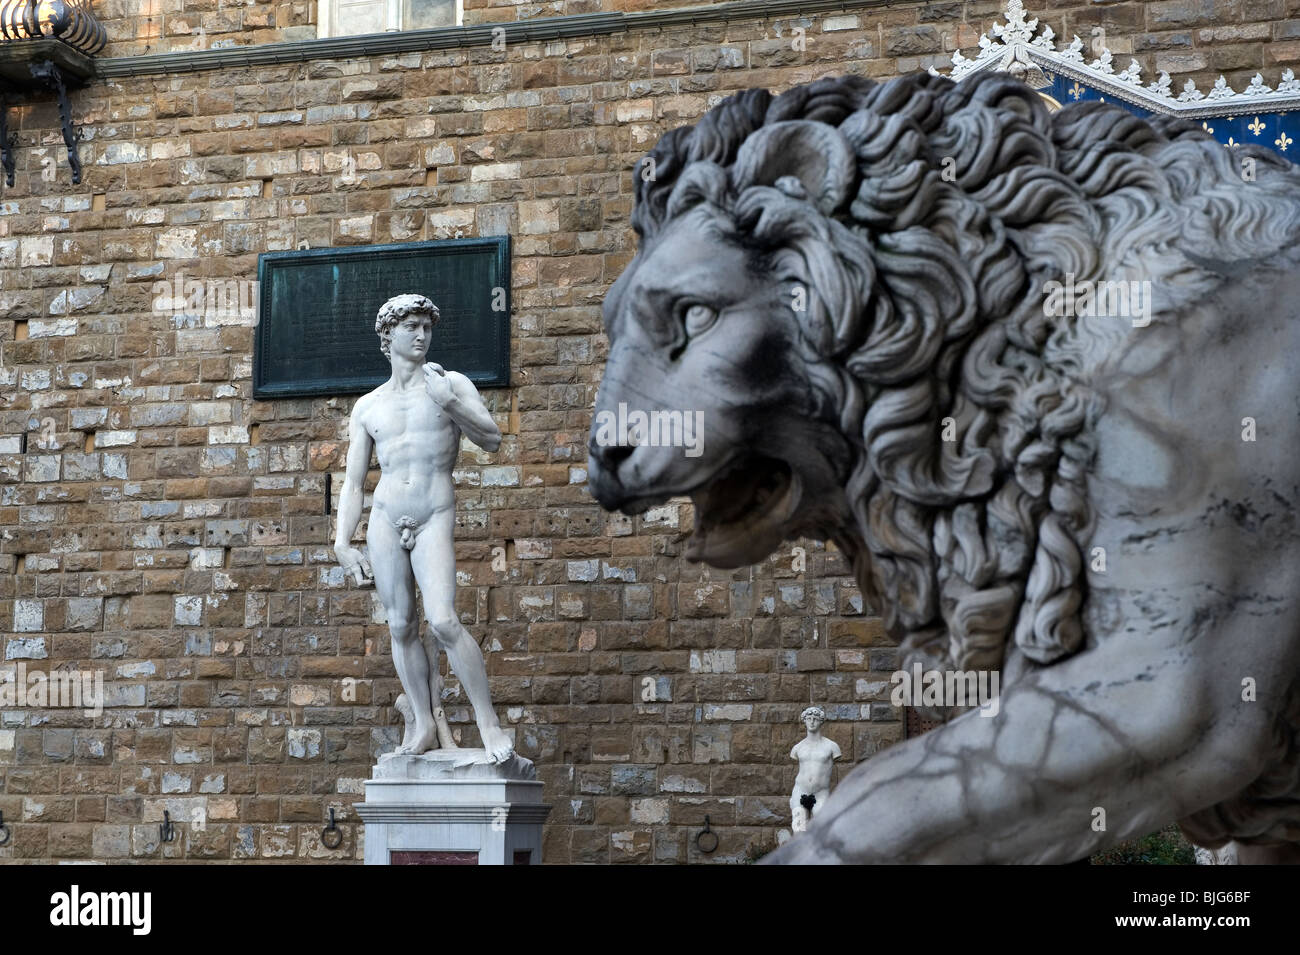 Florence,Tuscany,Italy. Statues of David by Michelangelo ( copy ) on left and the Flaminio Vaca-Lion in the Loggia - Stock Image